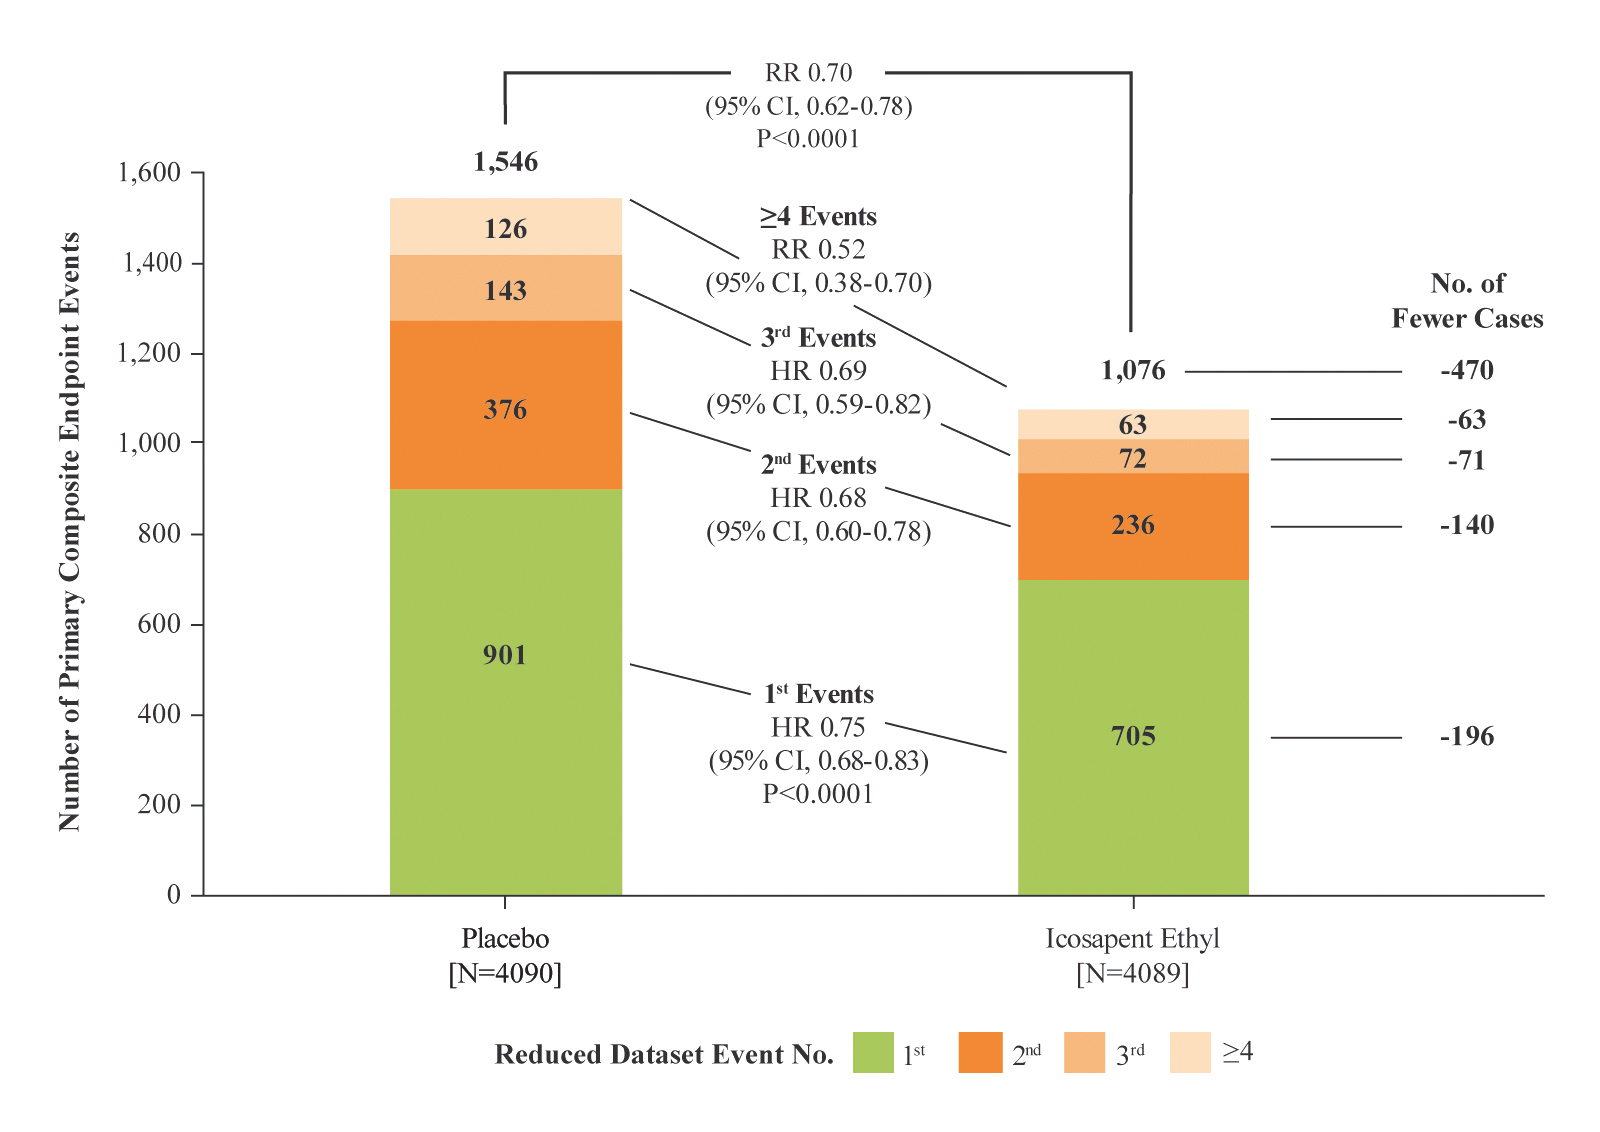 Figure 2: Distribution of First, Subsequent and Total MACE Events for Patients Randomized 1:1 to Icosapent Ethyl Versus Placebo